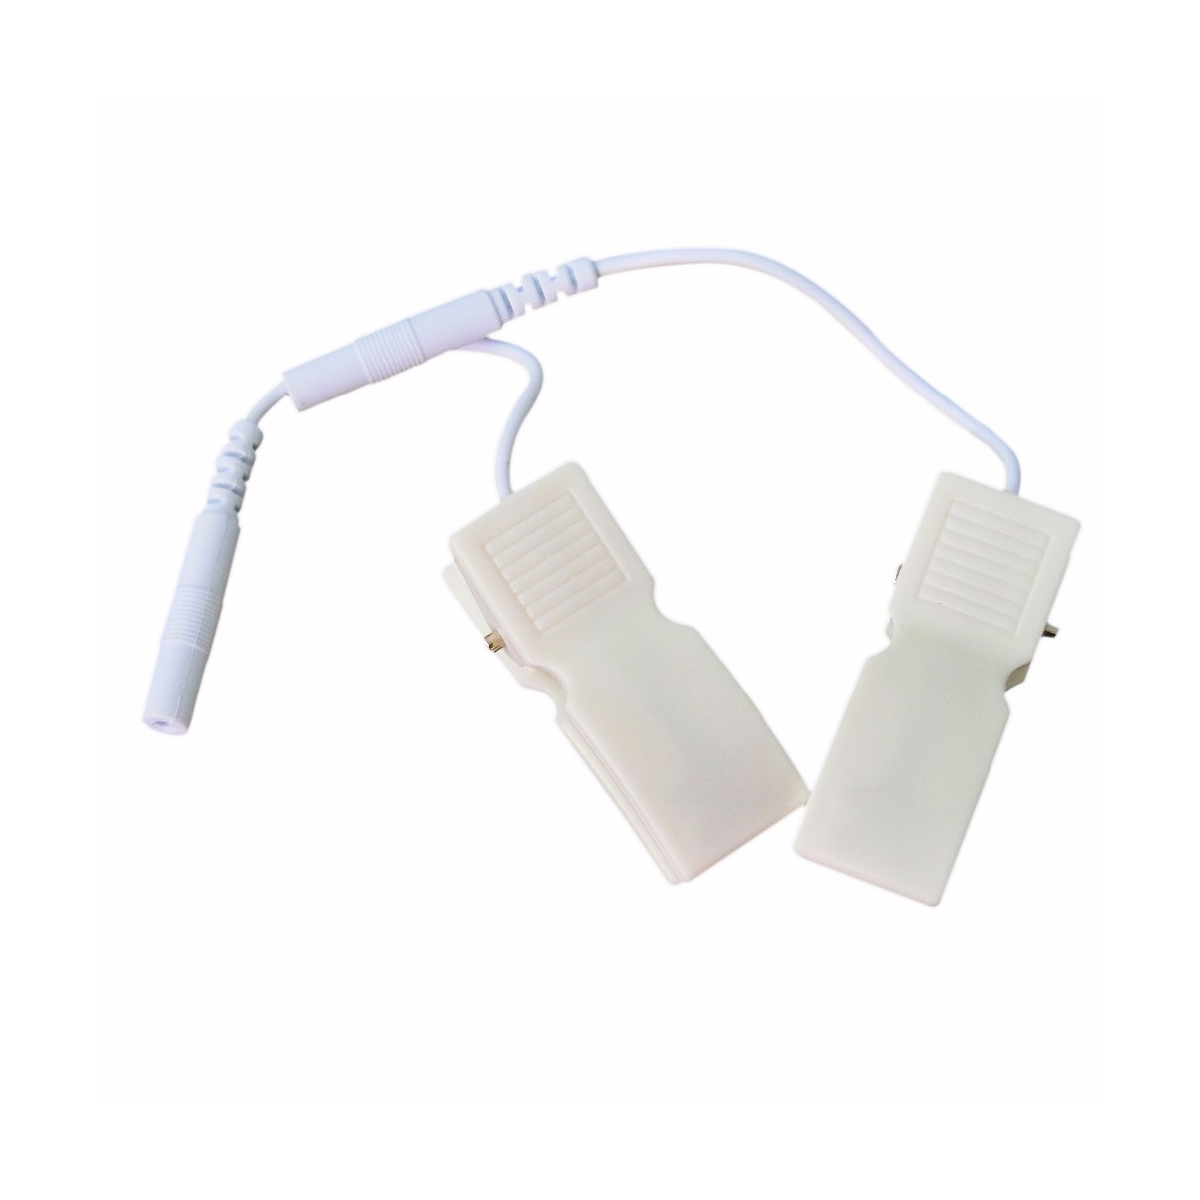 200Pcs/Lot 2.0mm Electric Pin Breast Nippple Ear Pain Relief Clip Tens Electrode Lead Wire Connecting Cable For Massager Machine 100pairs lot 3 5mm snap tens electrode lead wires connecting cables plug 2 5mm use for connect tens ems massager machine device